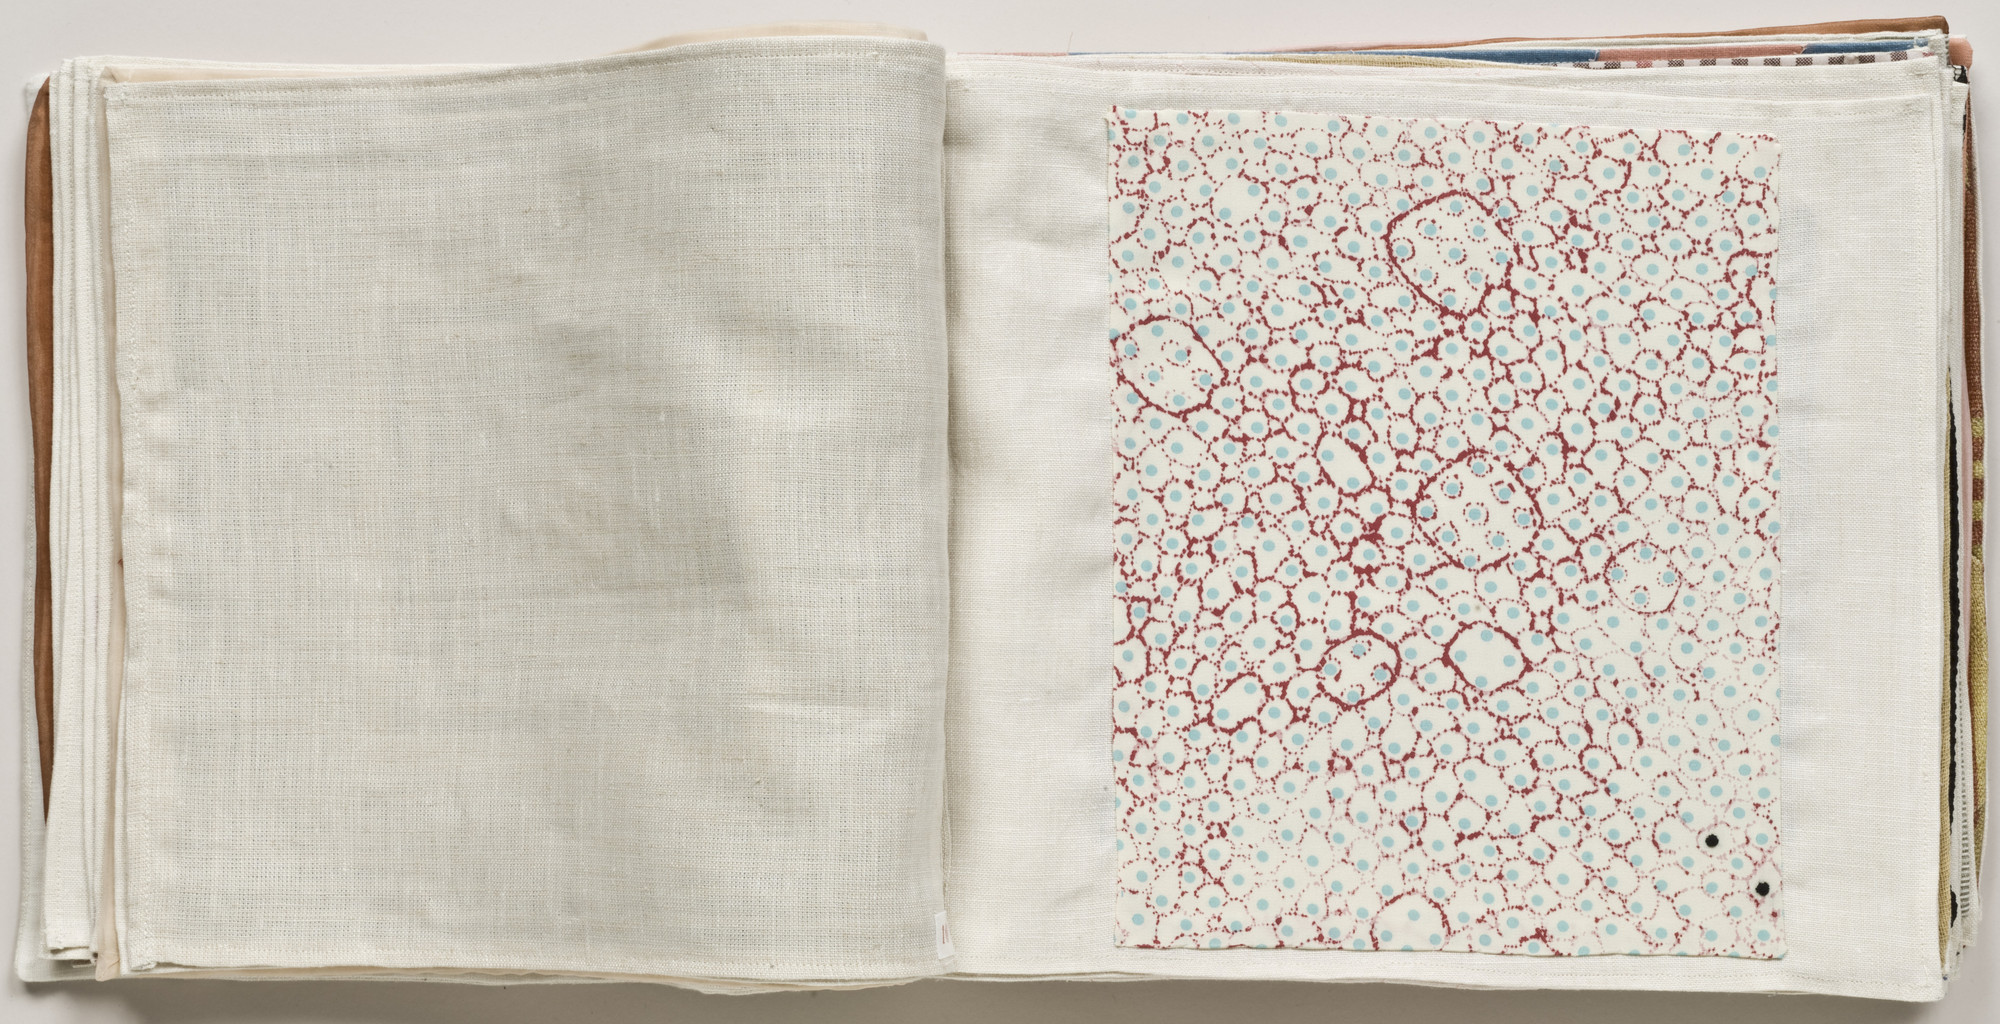 Louise Bourgeois. Untitled, no. 11 of 34, from the illustrated book, Ode à l'Oubli. 2004